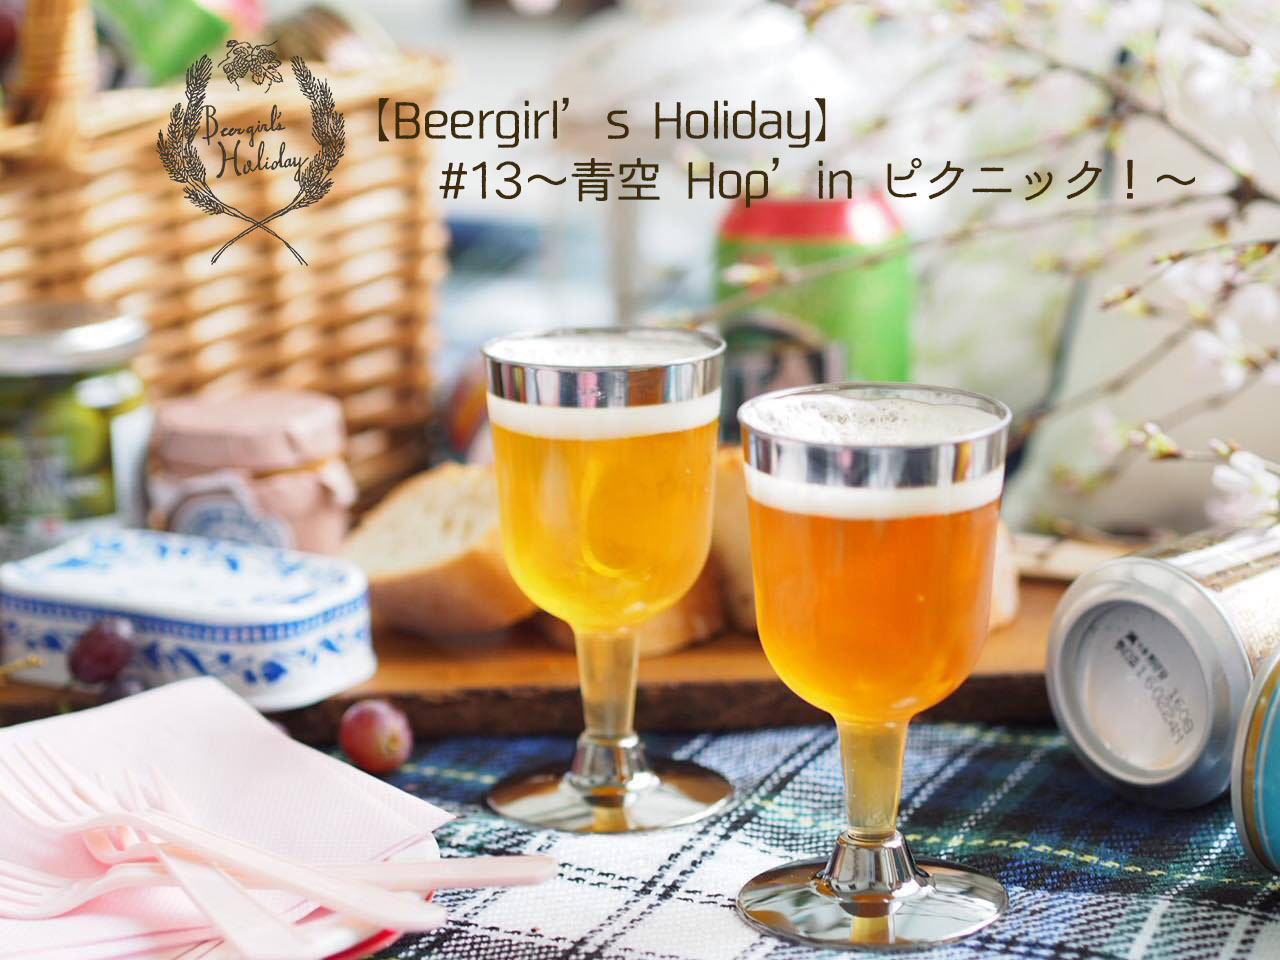 beergirl's holiday#13